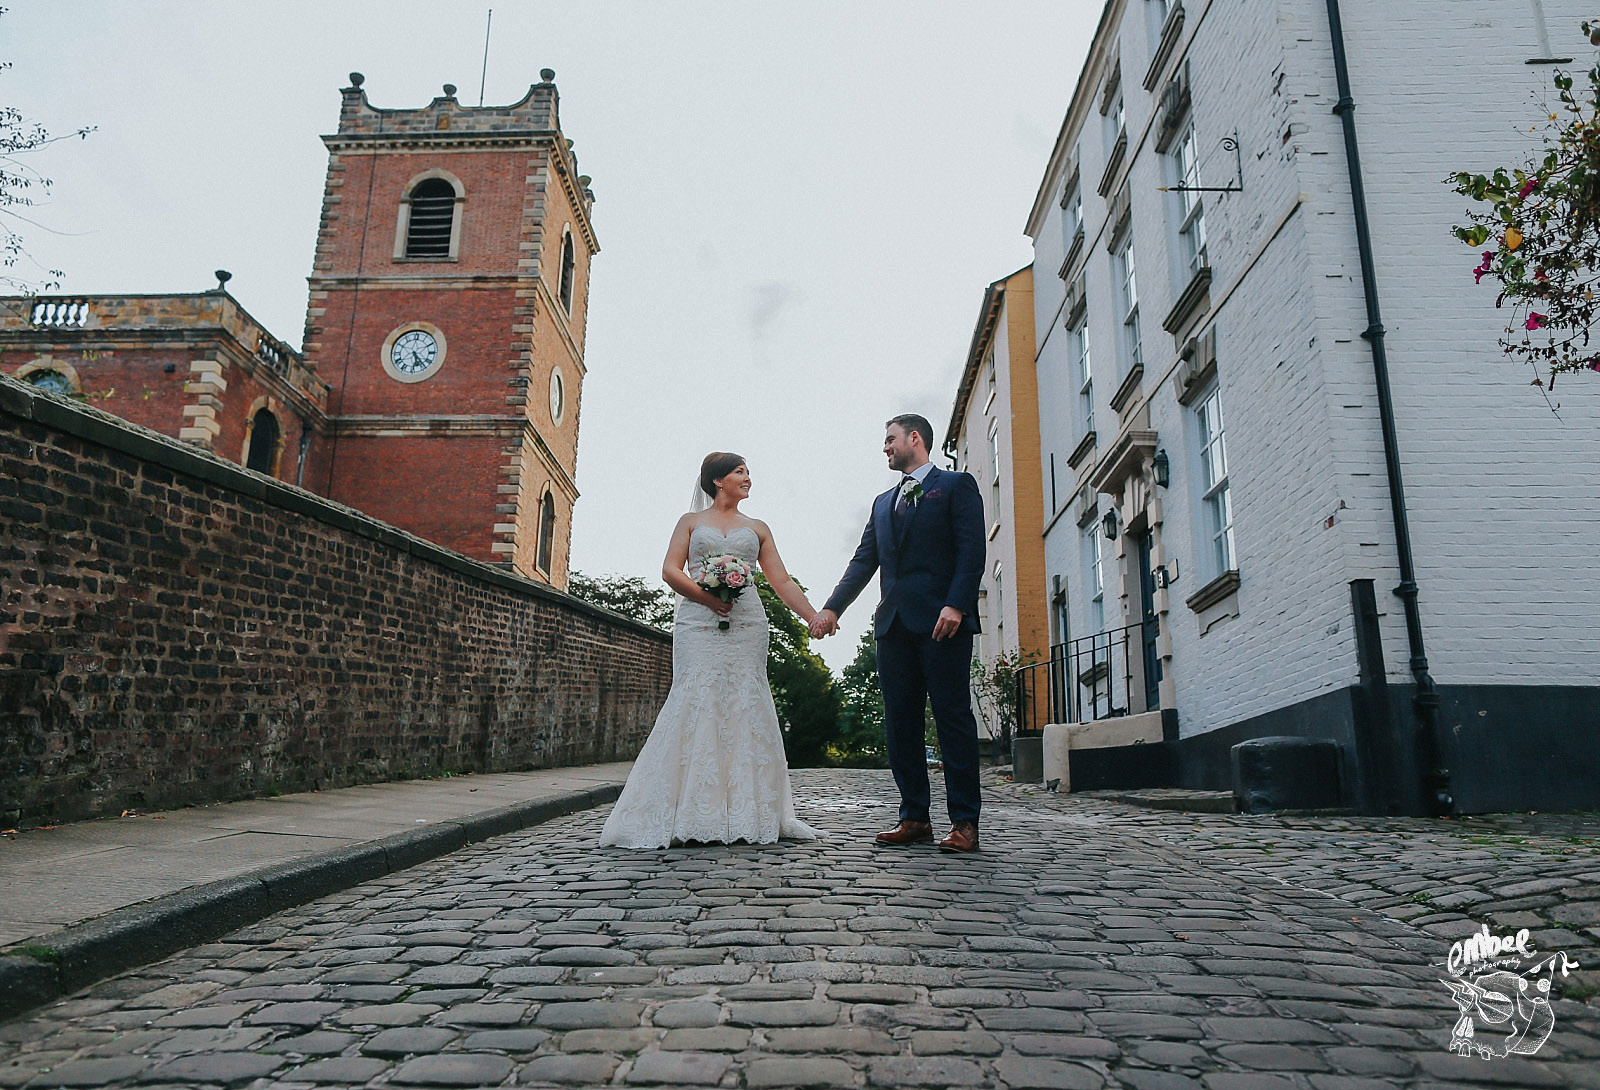 bride and groom in the middle of a cobbled street in knutsford